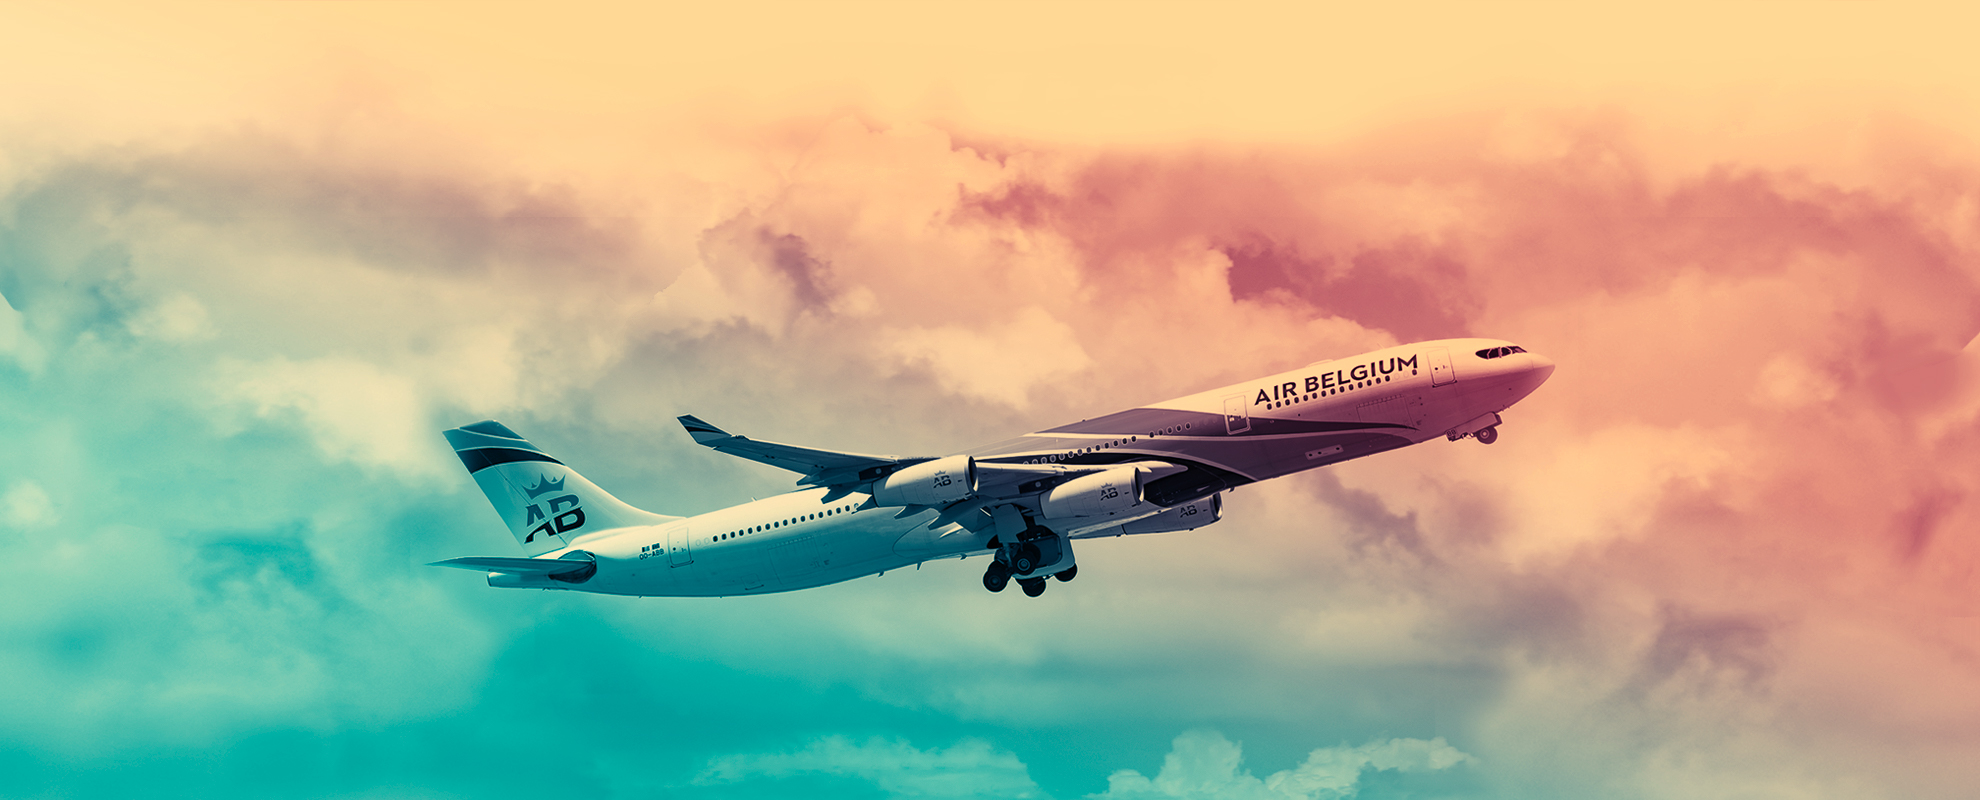 Illustration for: New Belgian carrier Air Belgium contracts BCO Aviation for its A340 livery